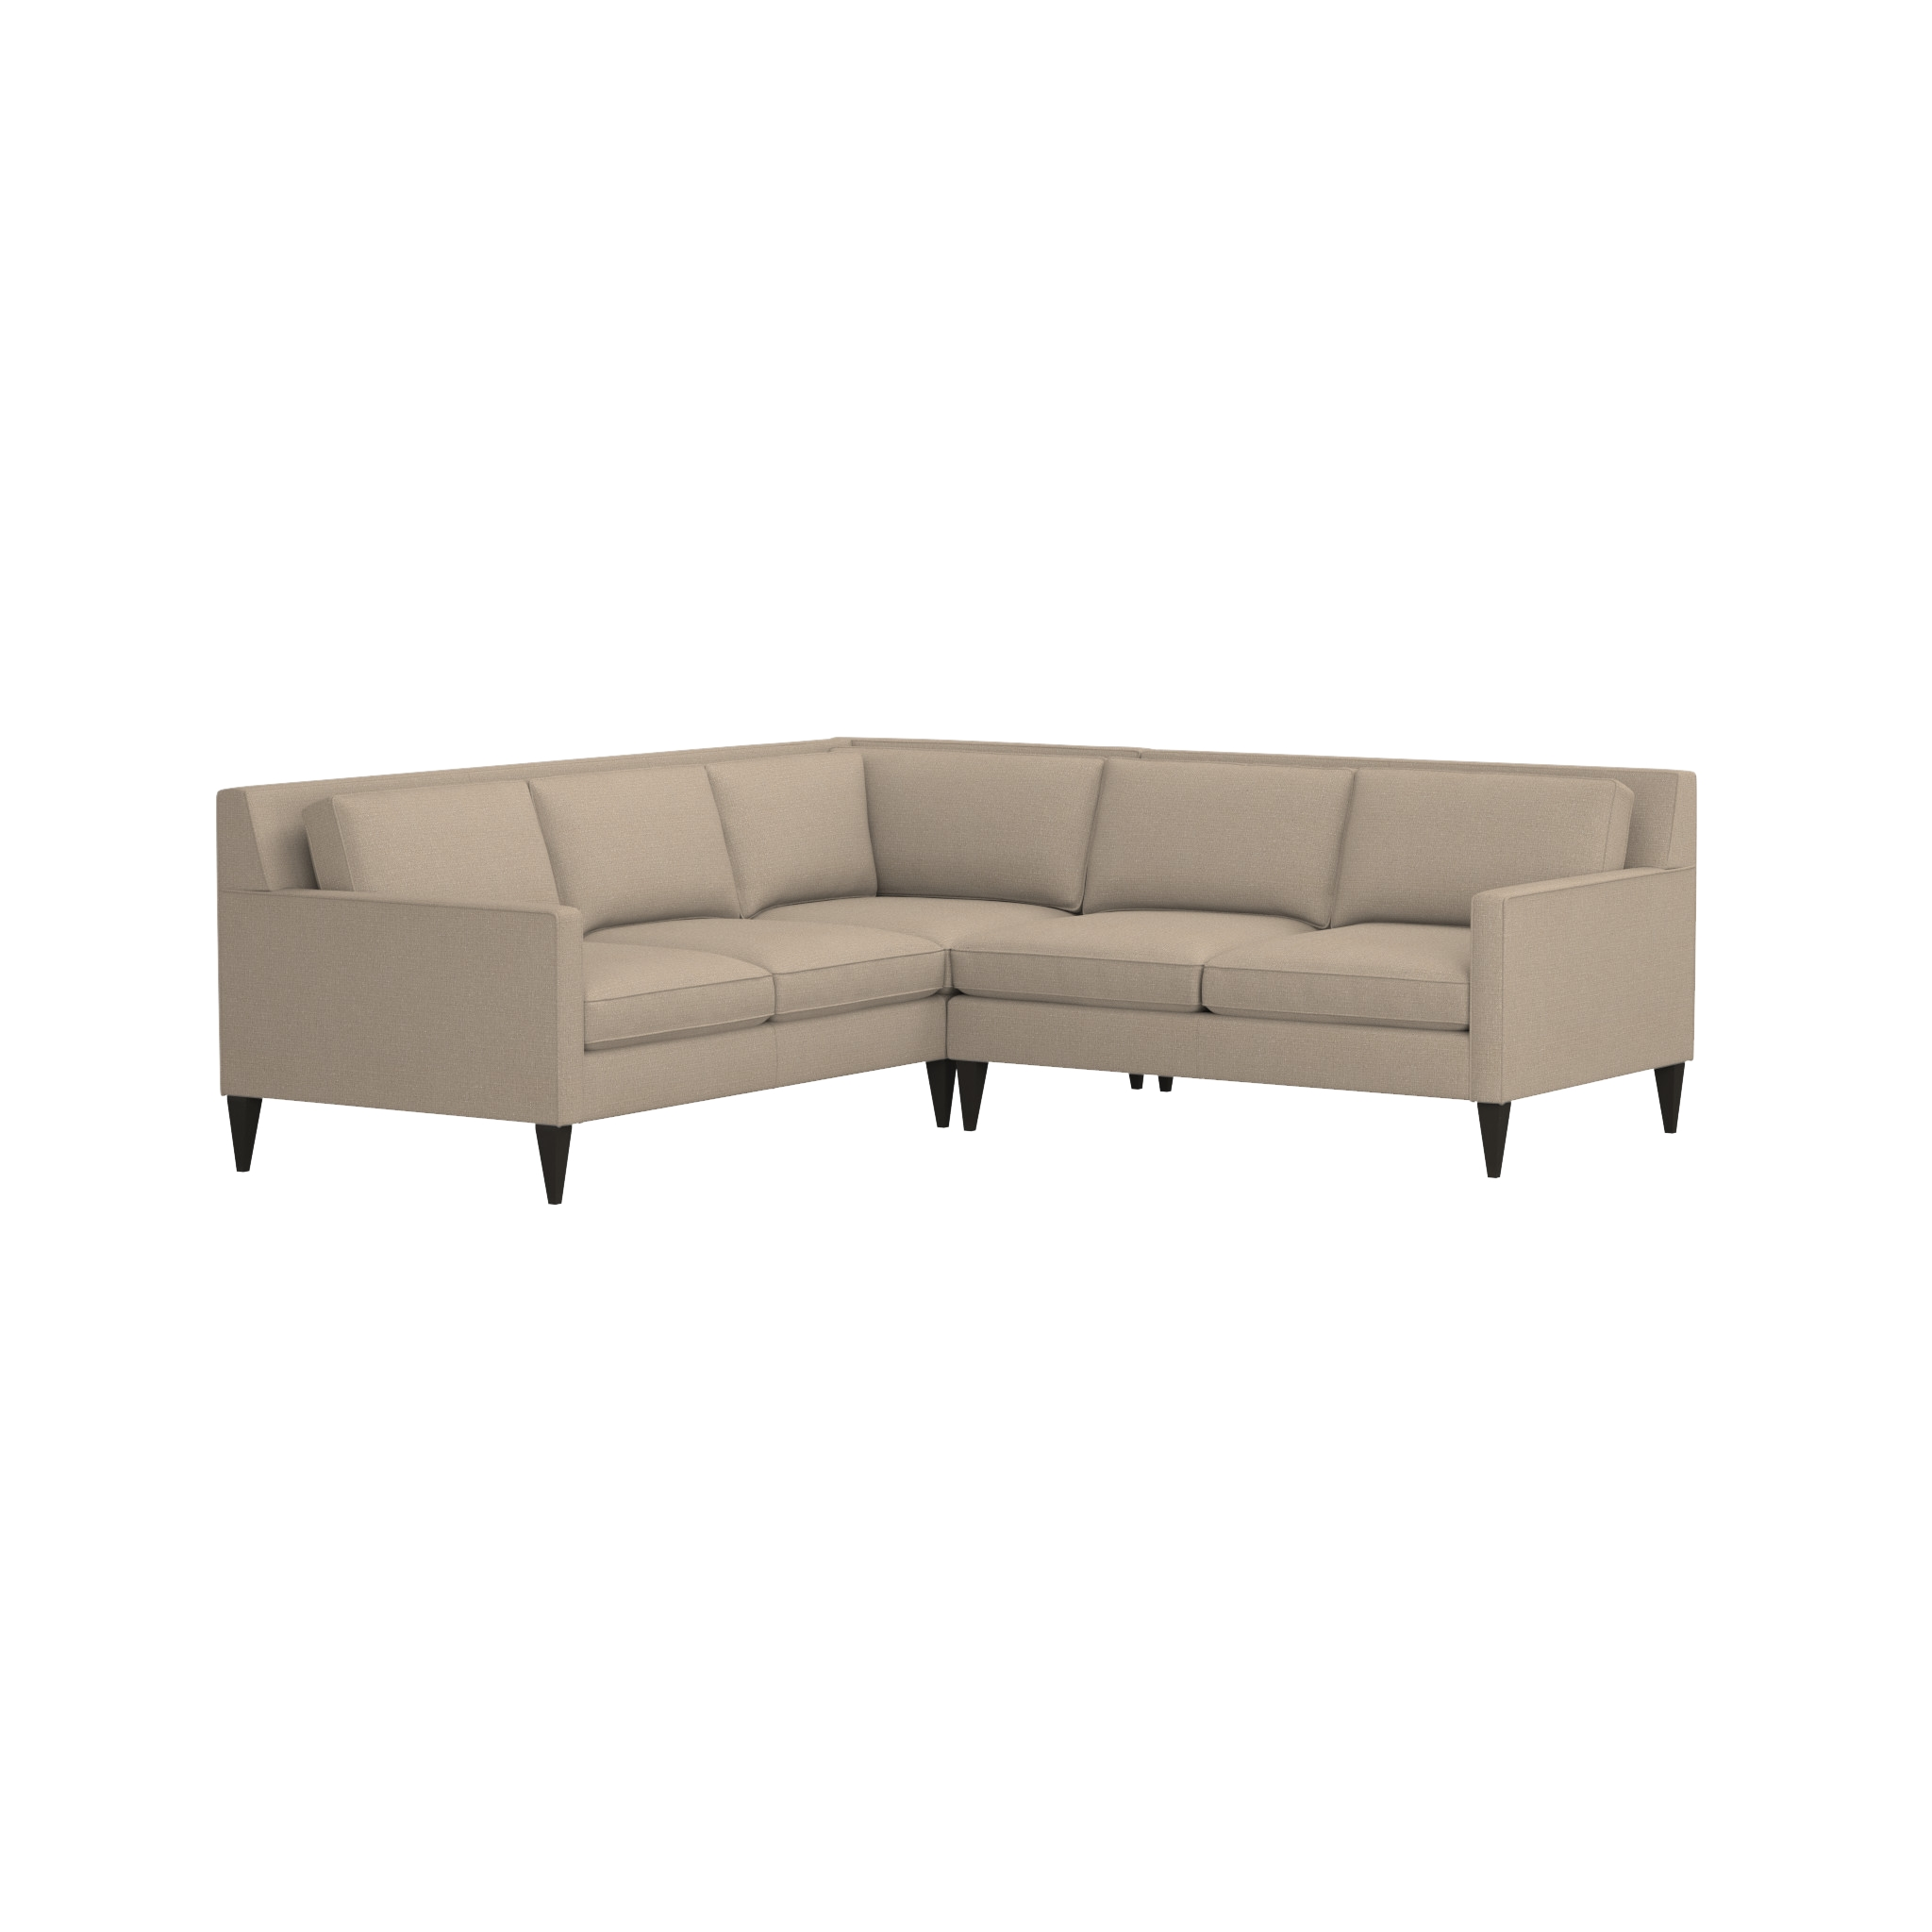 Rochelle 2 Piece Sectional Sofa | Crate And Barrel For Sectional Crate And Barrel (Image 17 of 20)